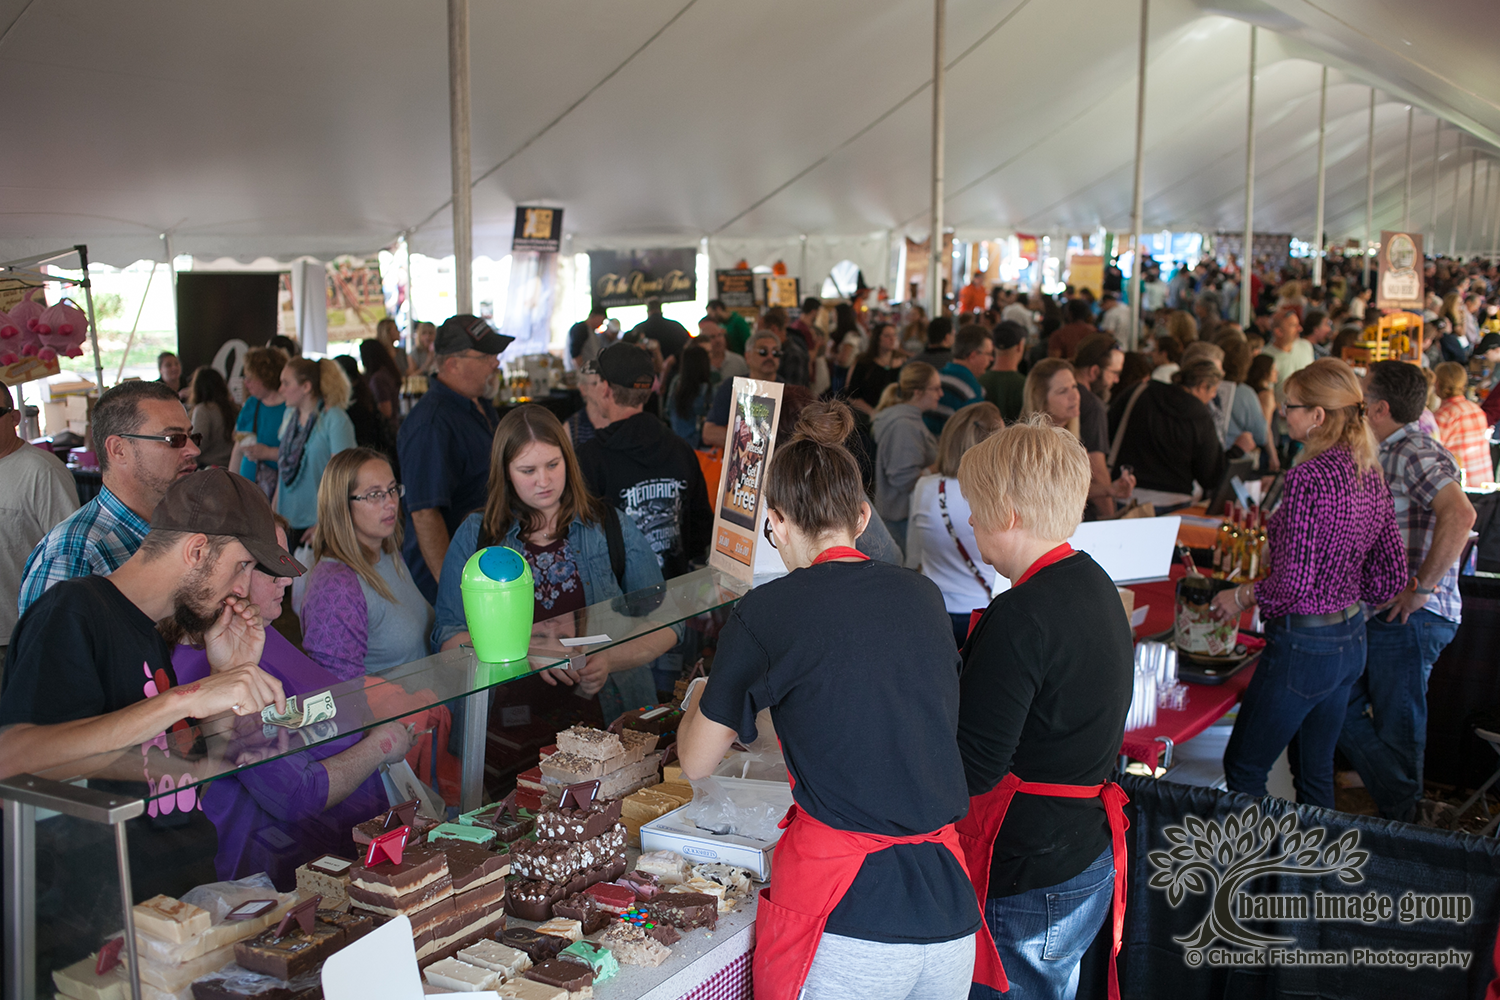 Baum_Image_Group_The_Chocolate_Expo_Chuck_Fishman_October2017_Museum_Village_276.png